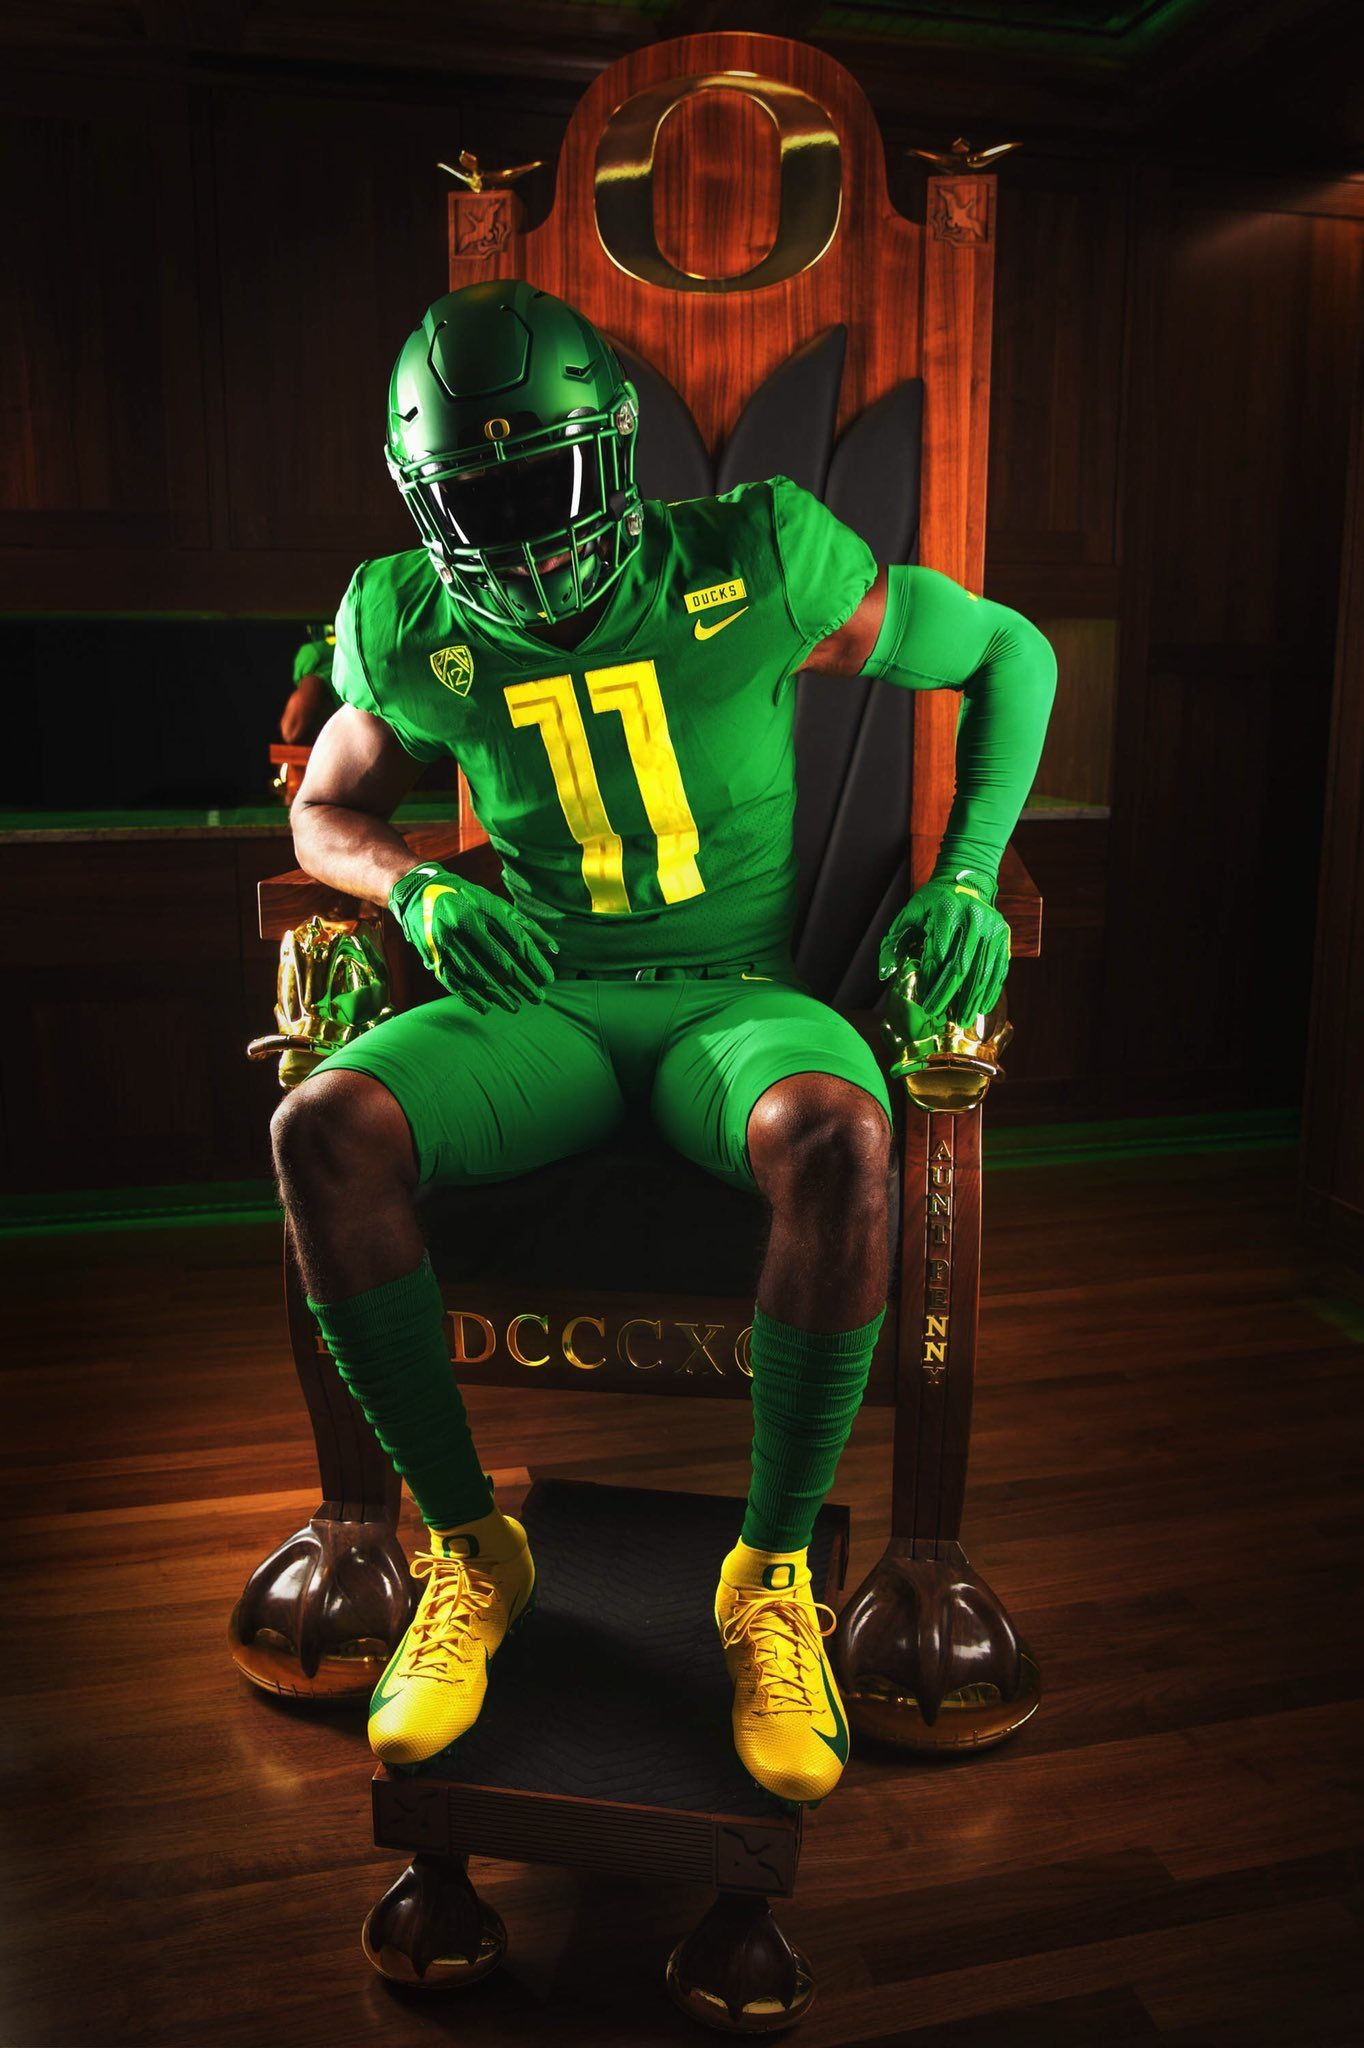 Pin By Chase Billings On Oregon Ducks College Football Uniforms Ducks Football Oregon Football